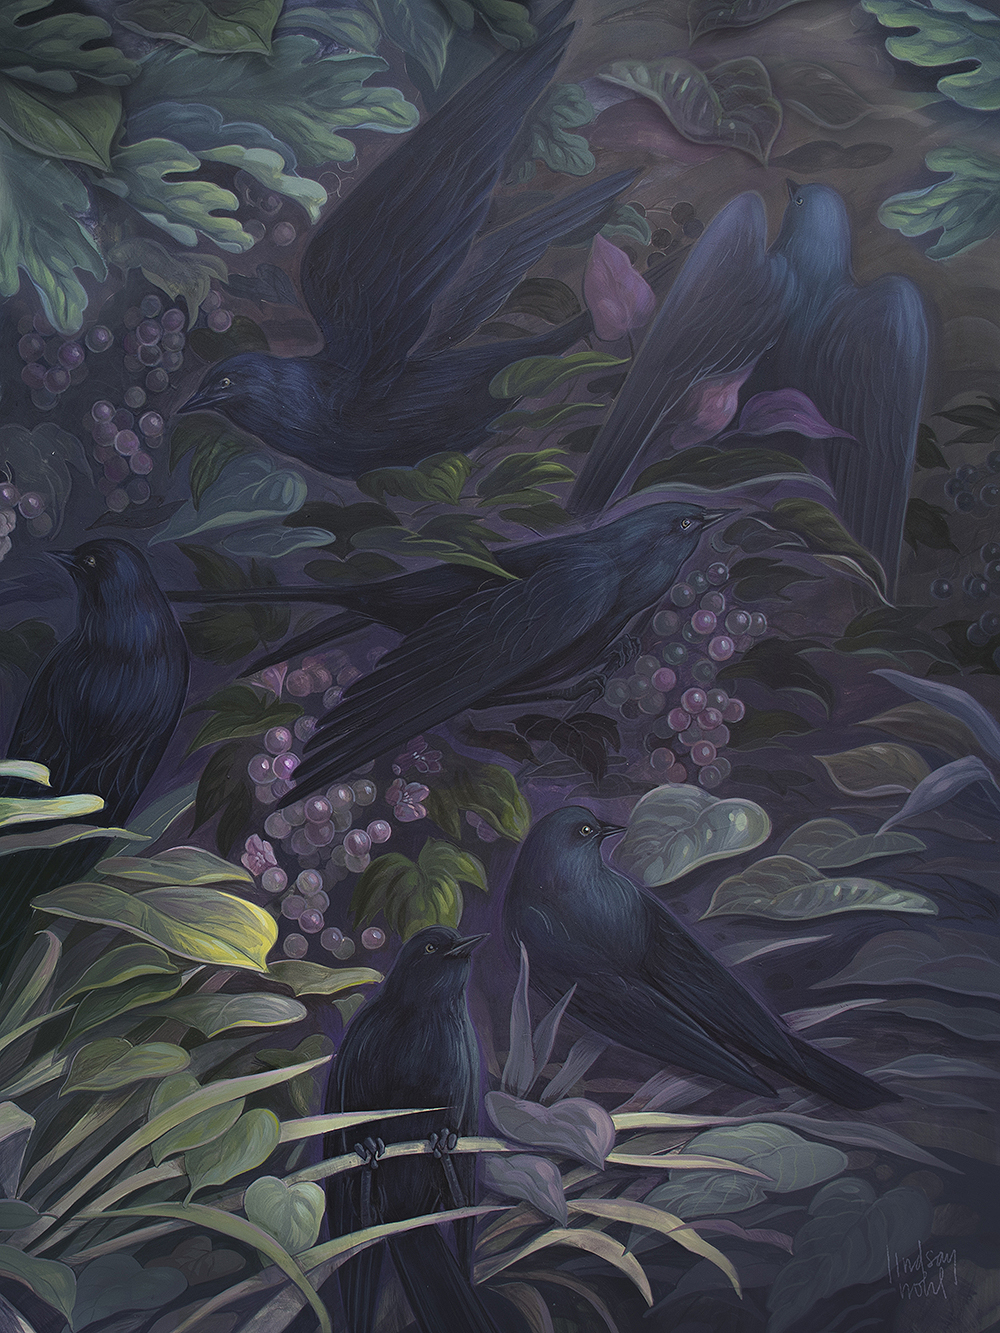 """Grackles"" by Lindsay Nohl"